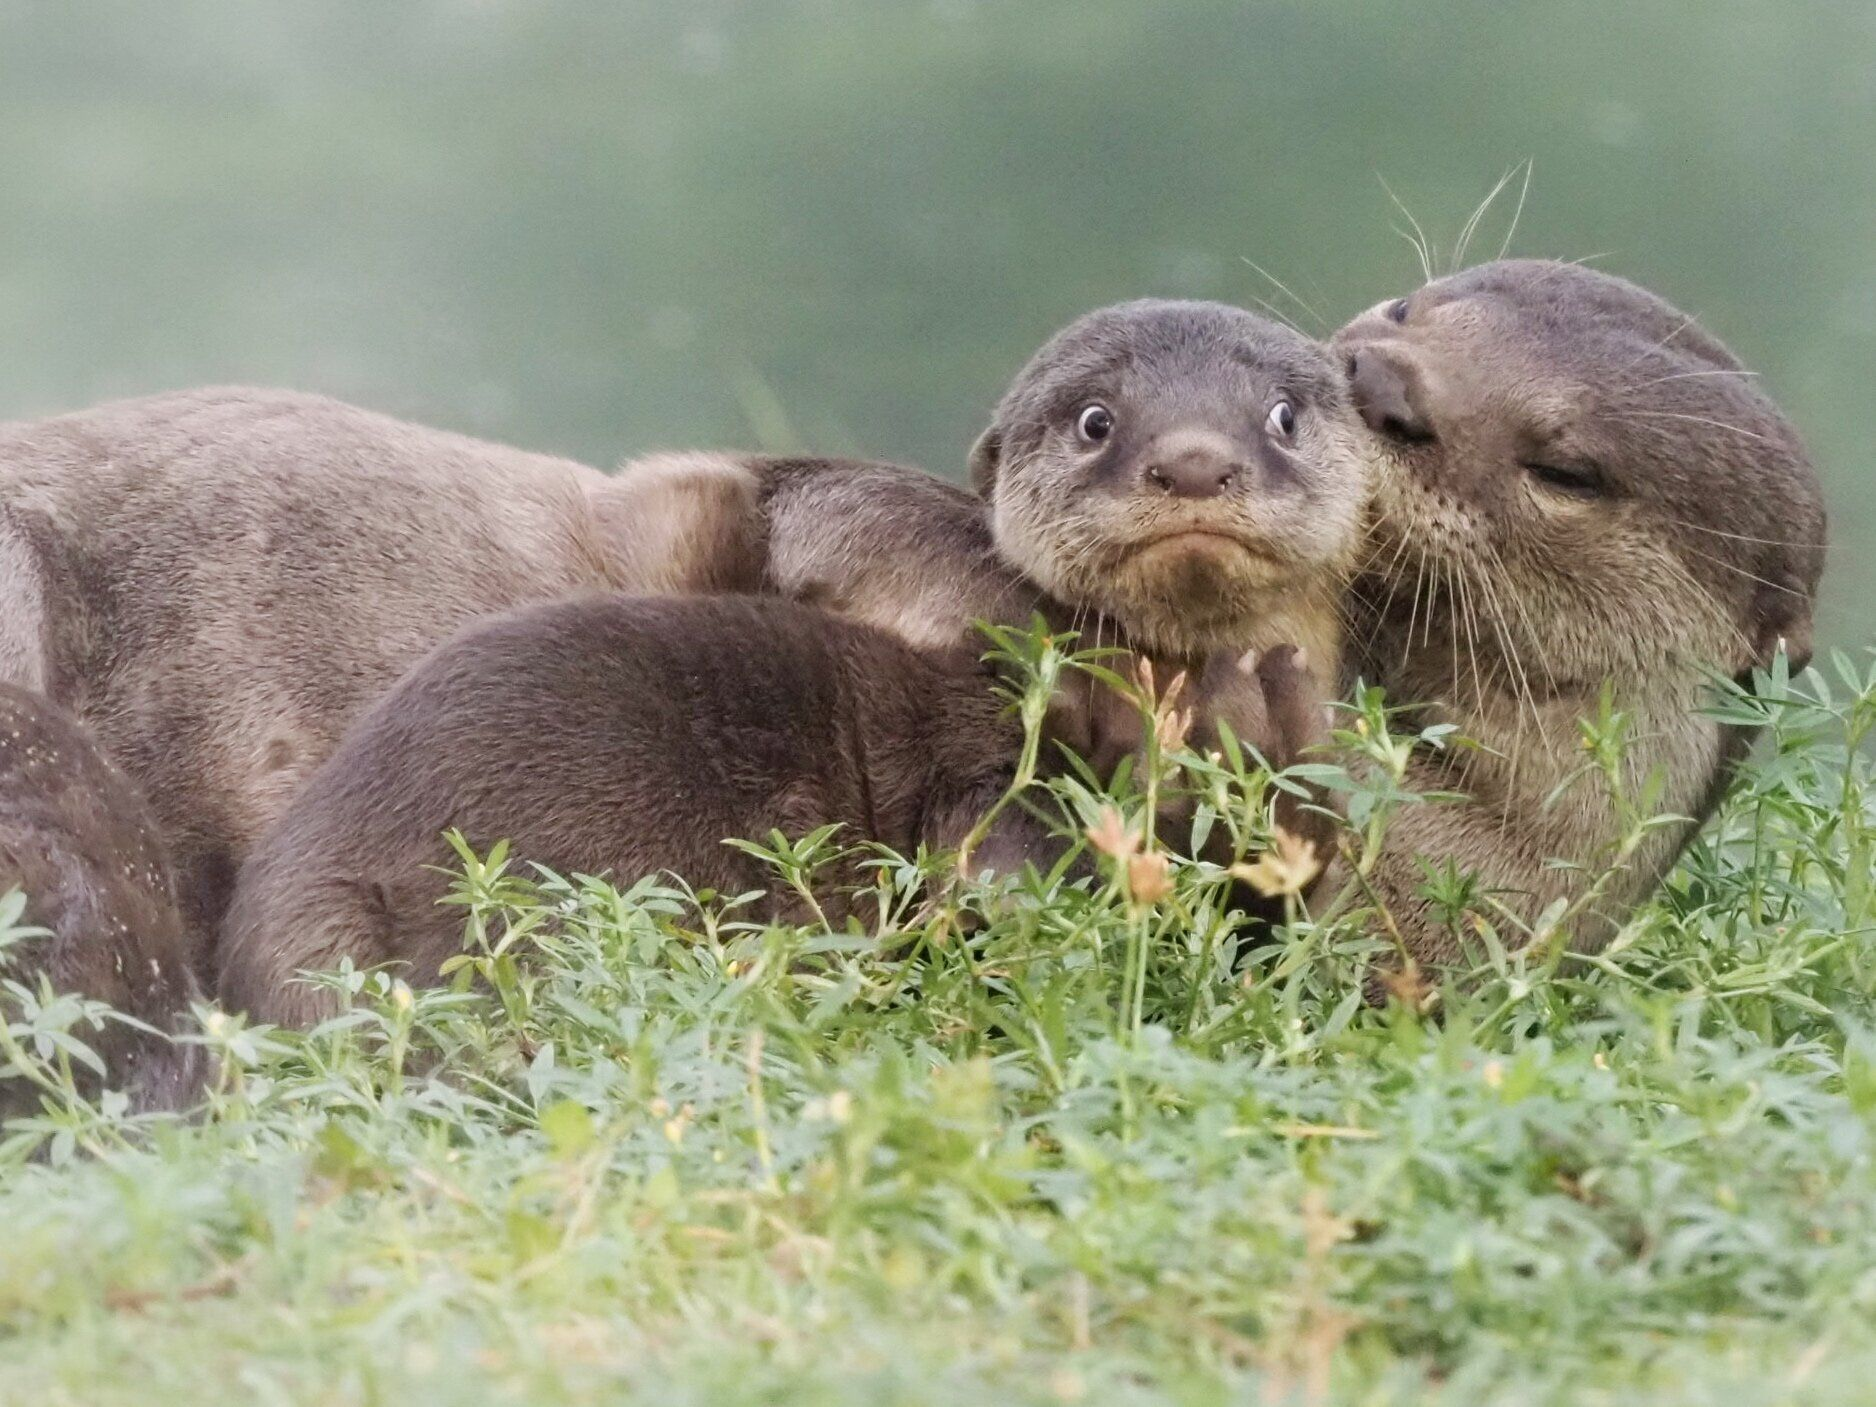 """It's the Last Day of School Holidays"" is an image of smooth-coated otters in Singapore."